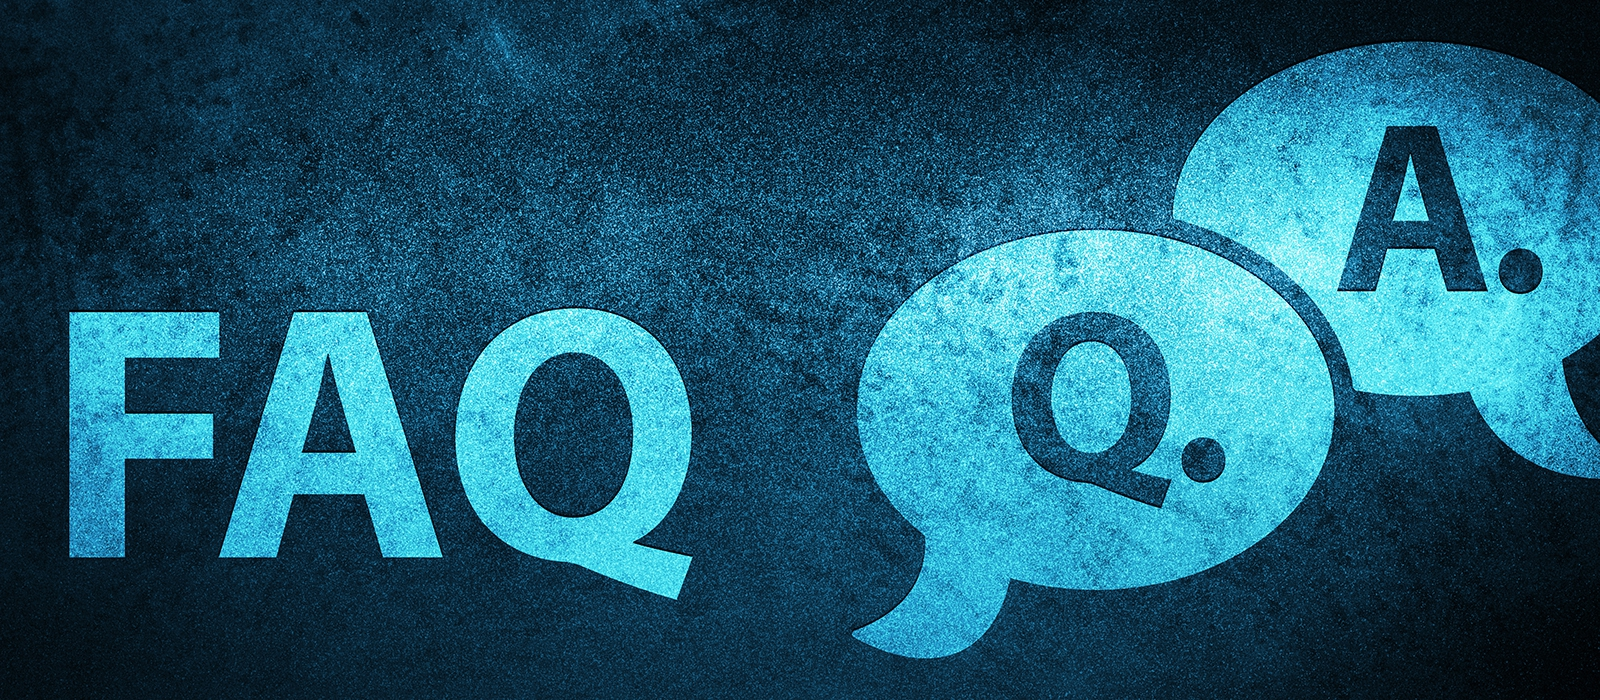 FAQ frequently asked questions aquajet hydrodemolition industrial cleaning equipment ecosilence aqua cutter ergo power pack answers products